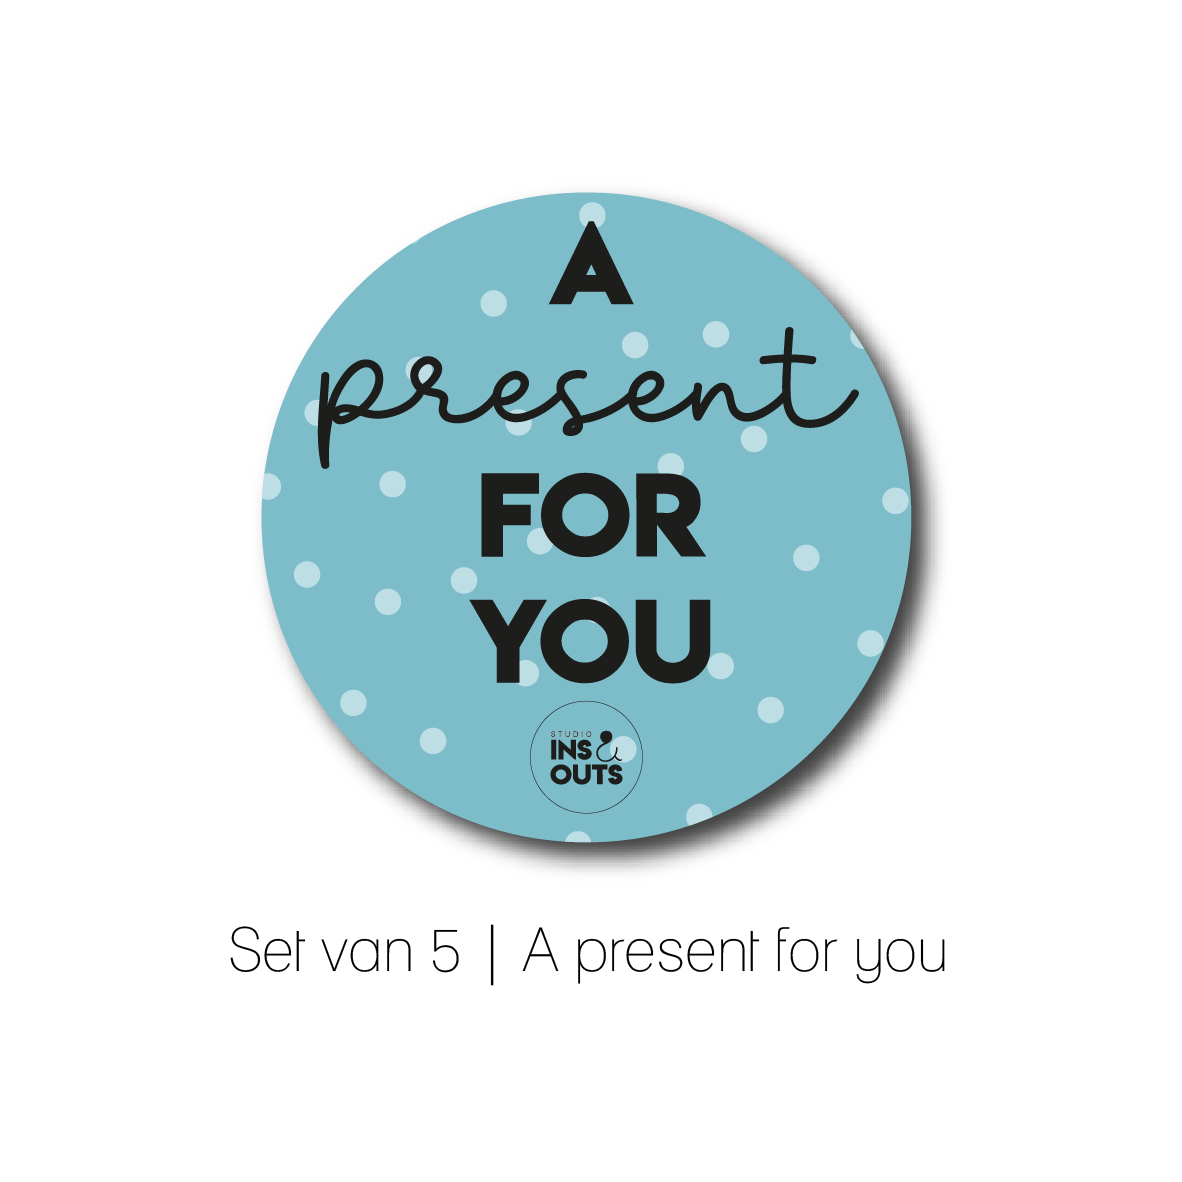 Set van 5 cadeau stickers | A present for you